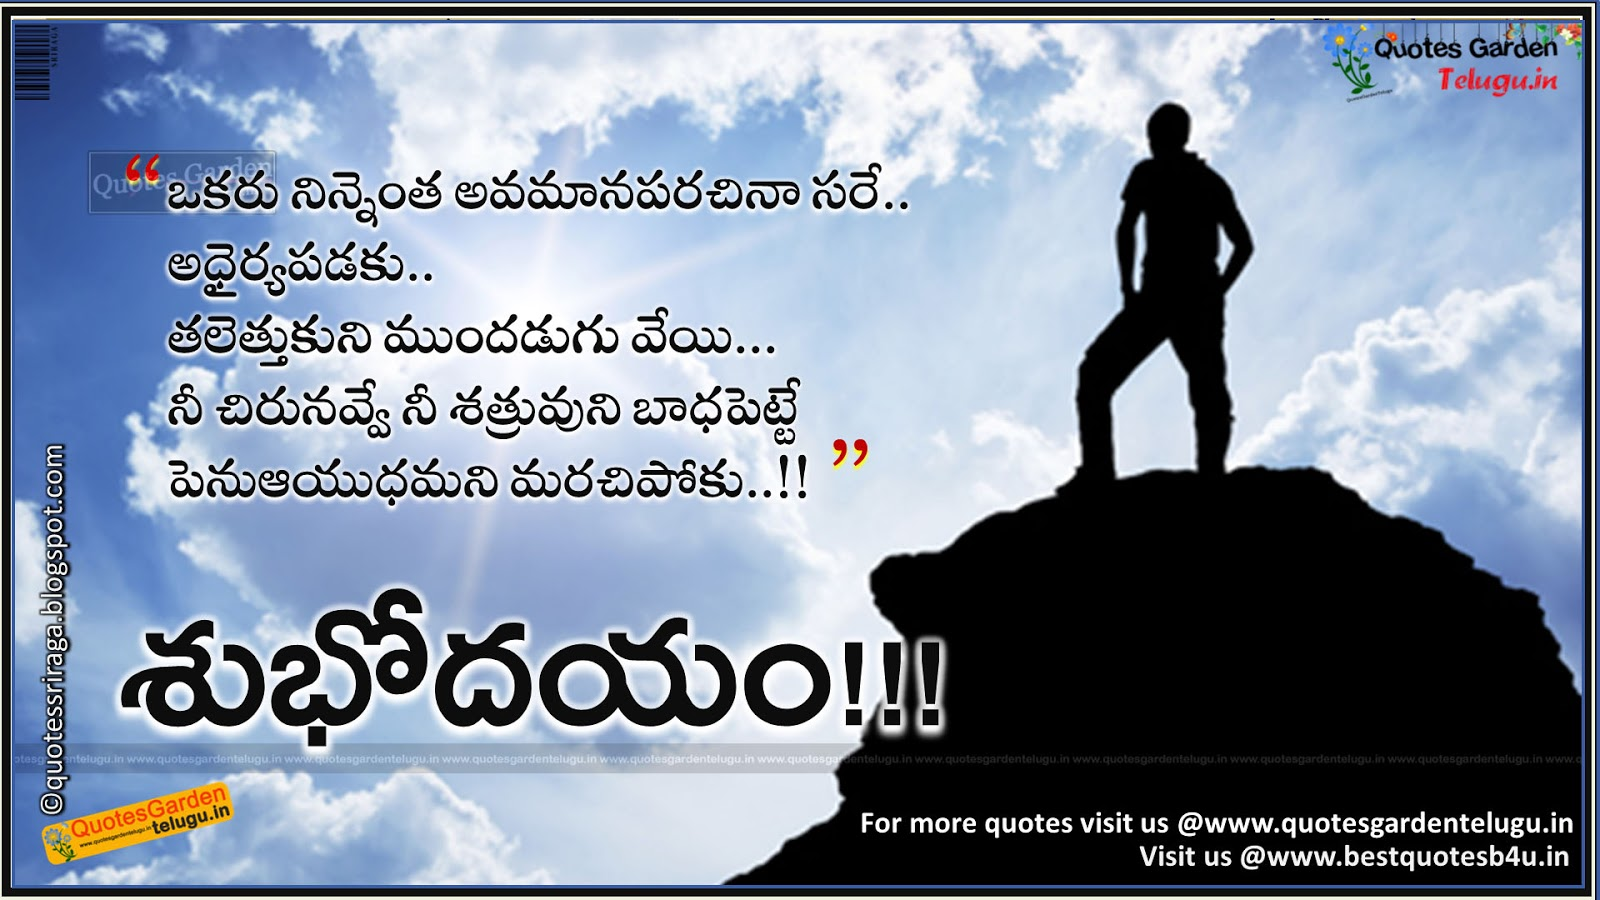 Inspirational Good Morning Messages In Telugu Quotes Garden Telugu Telugu Quotes English Quotes Hindi Quotes